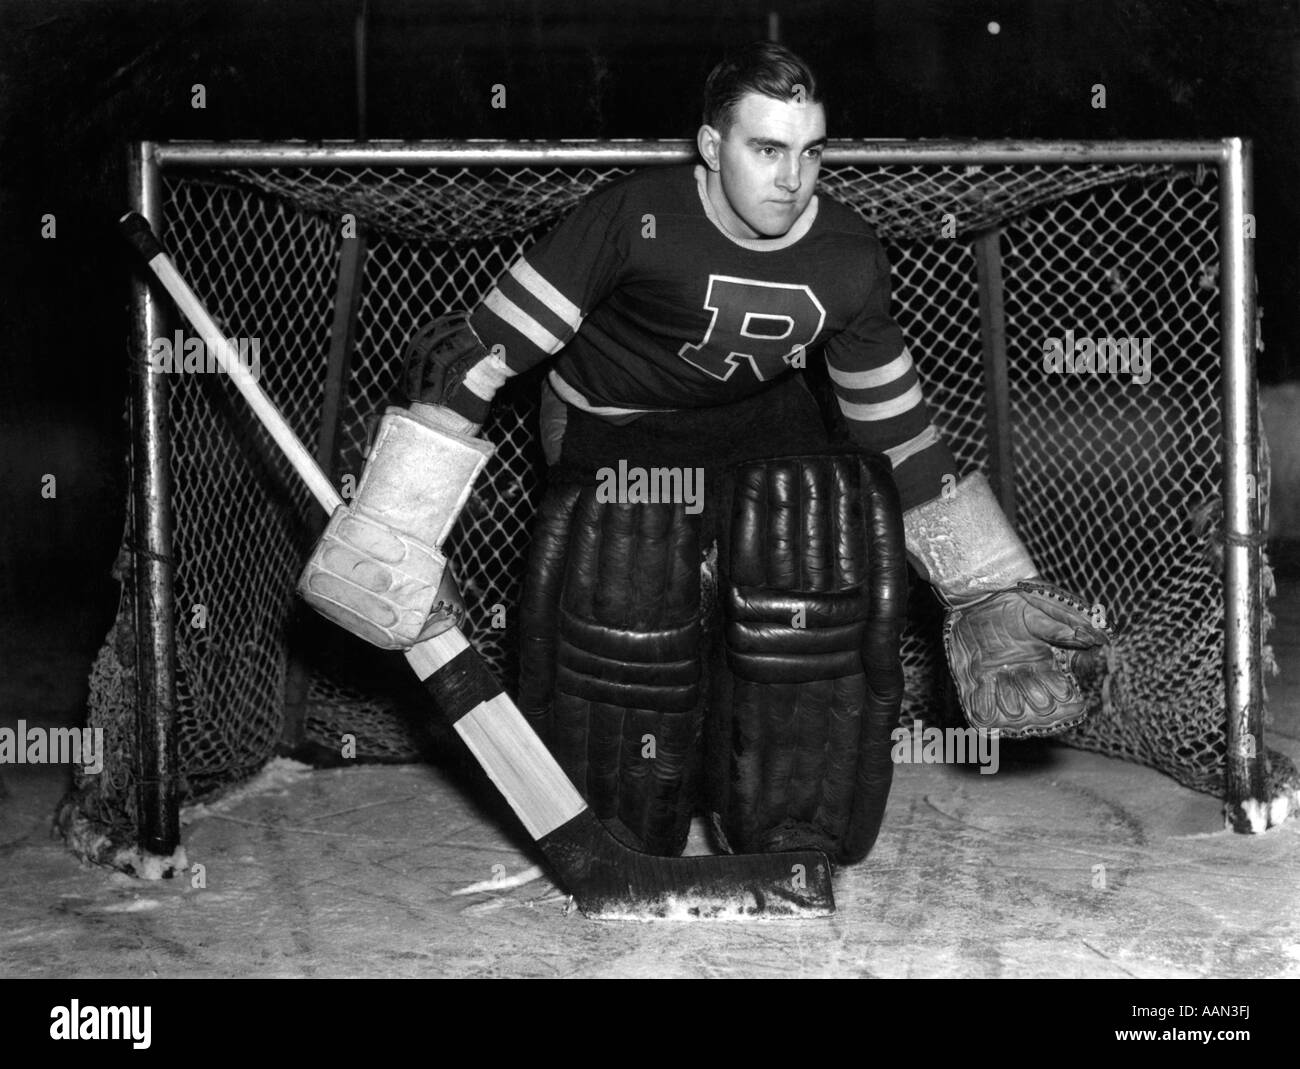 how to make a free standing hockey goalie